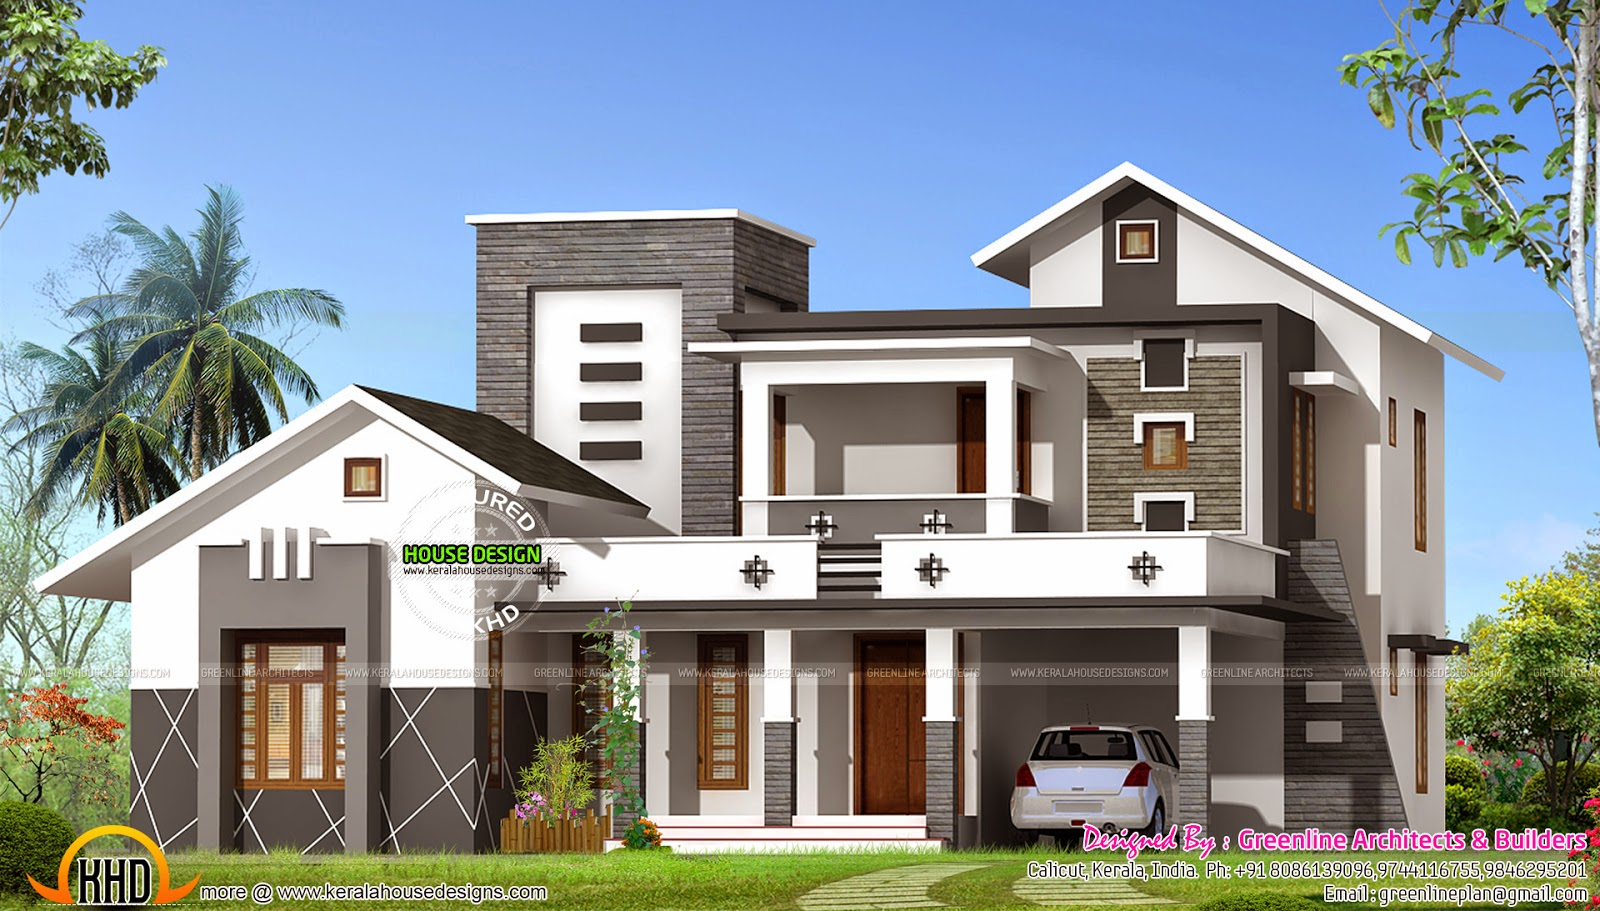 Small kerala style home keralahousedesigns for Modern house plans 2400 sq ft